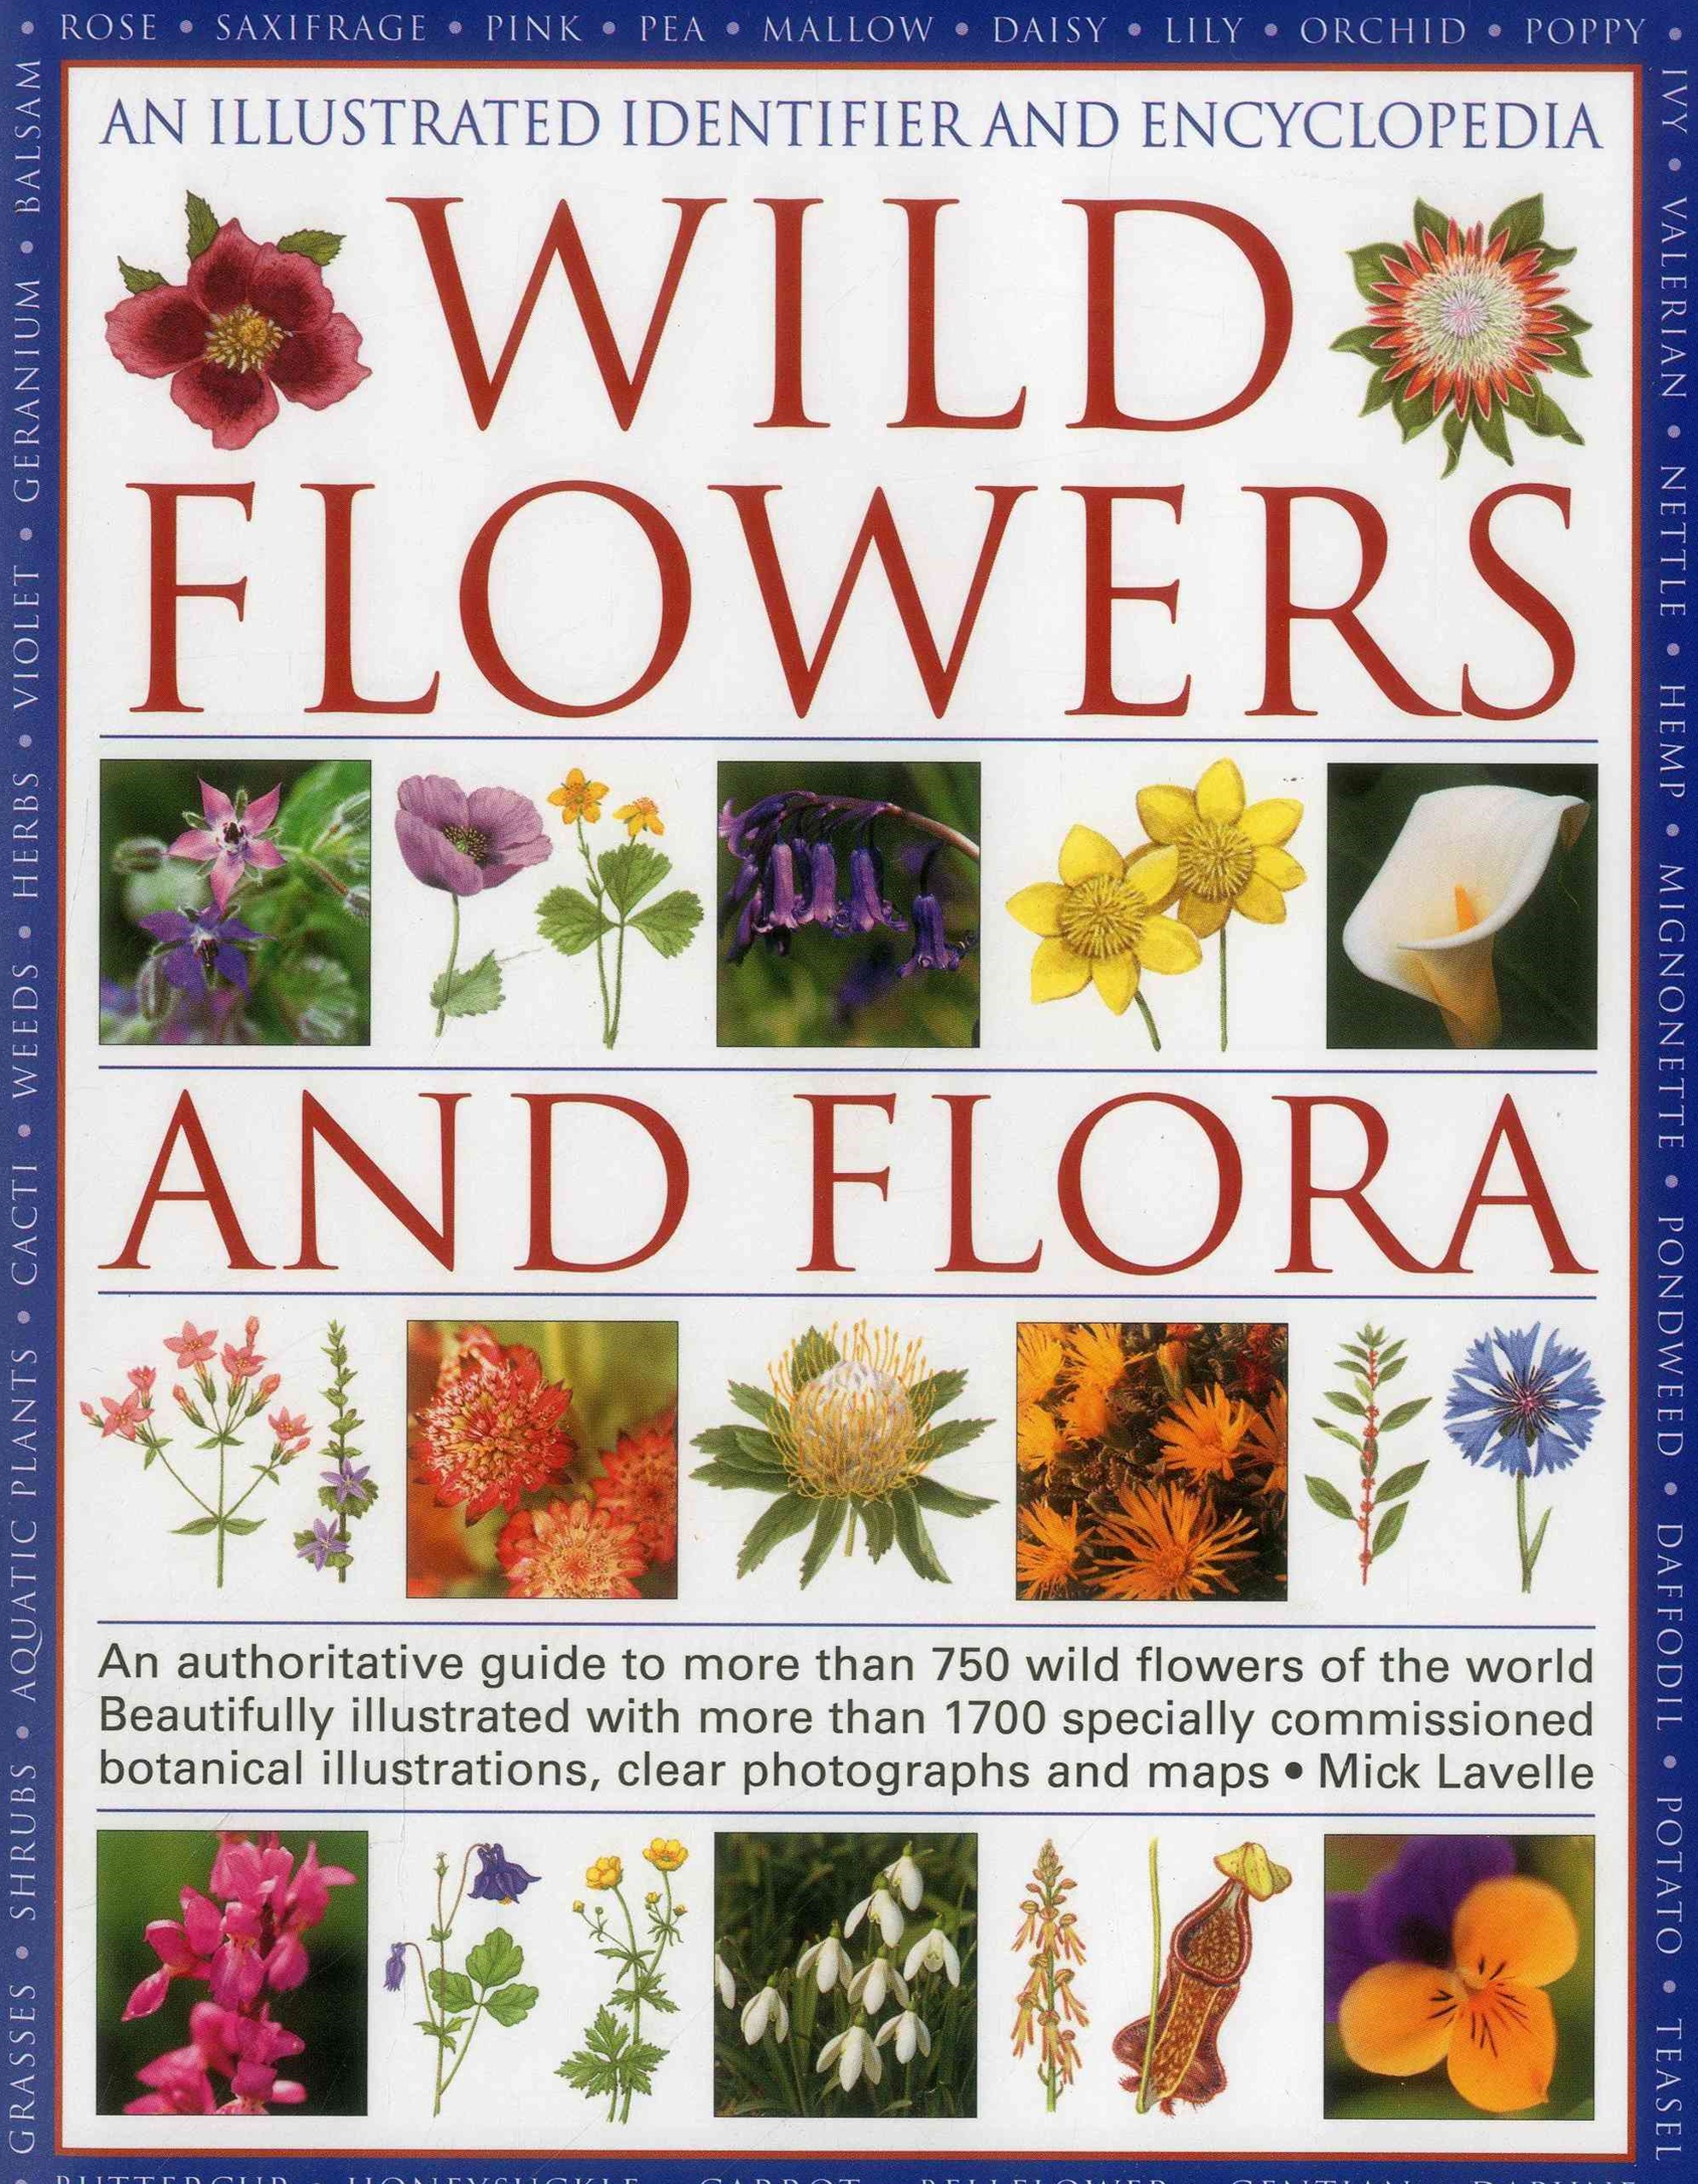 Illustrated Identifier and Encyclopedia: Wild Flowers and Flora